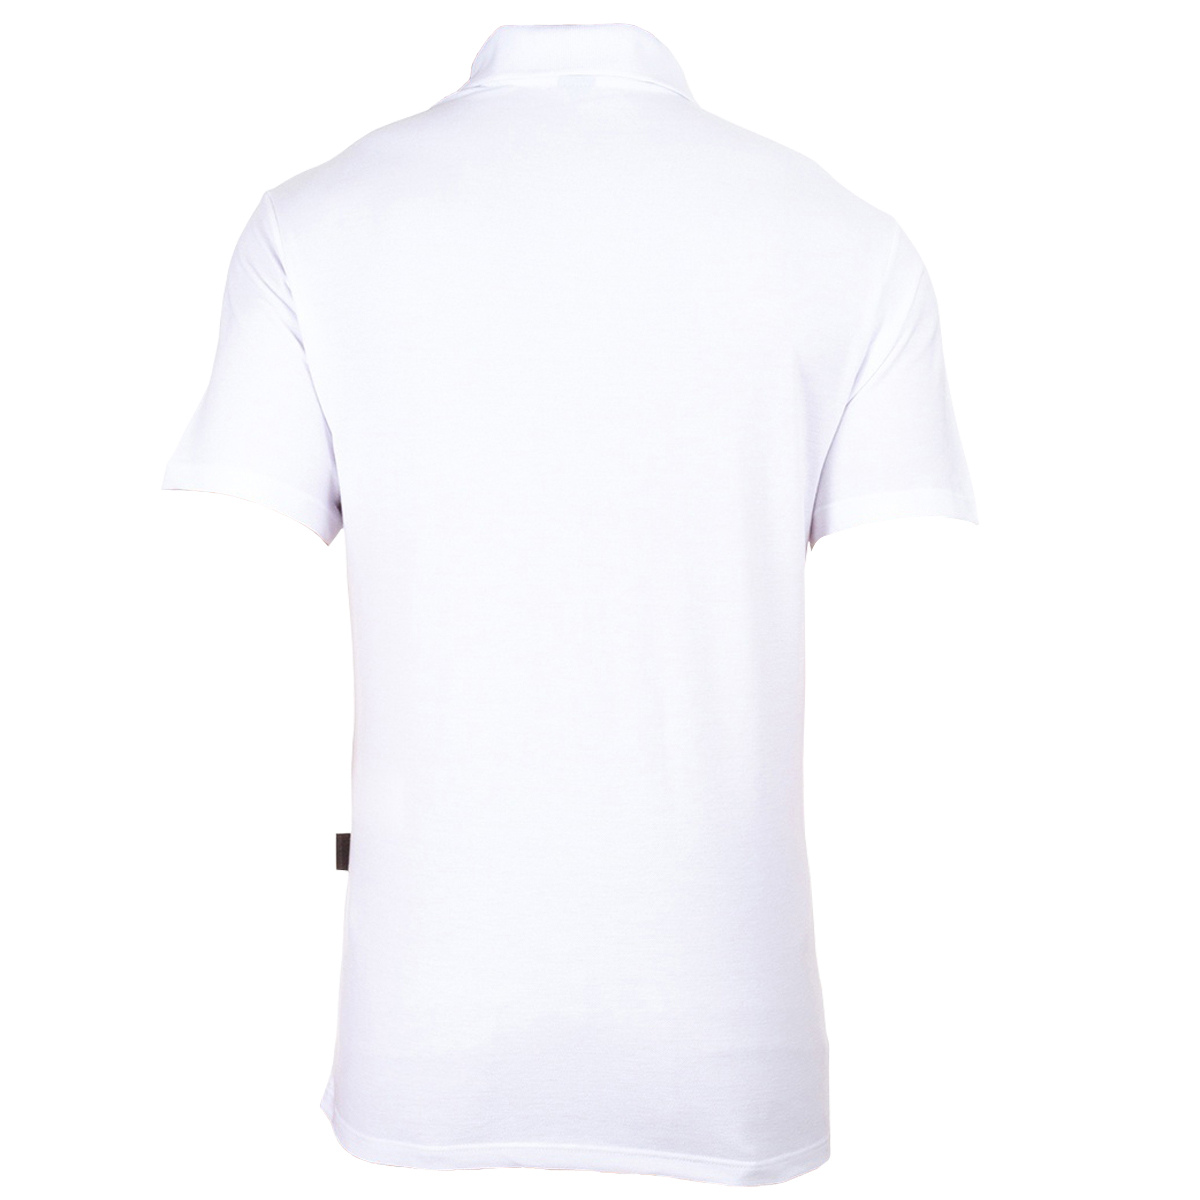 Camisa Oakley Patch 2.0 White ref  434268BR-100 53beb6e9734cd